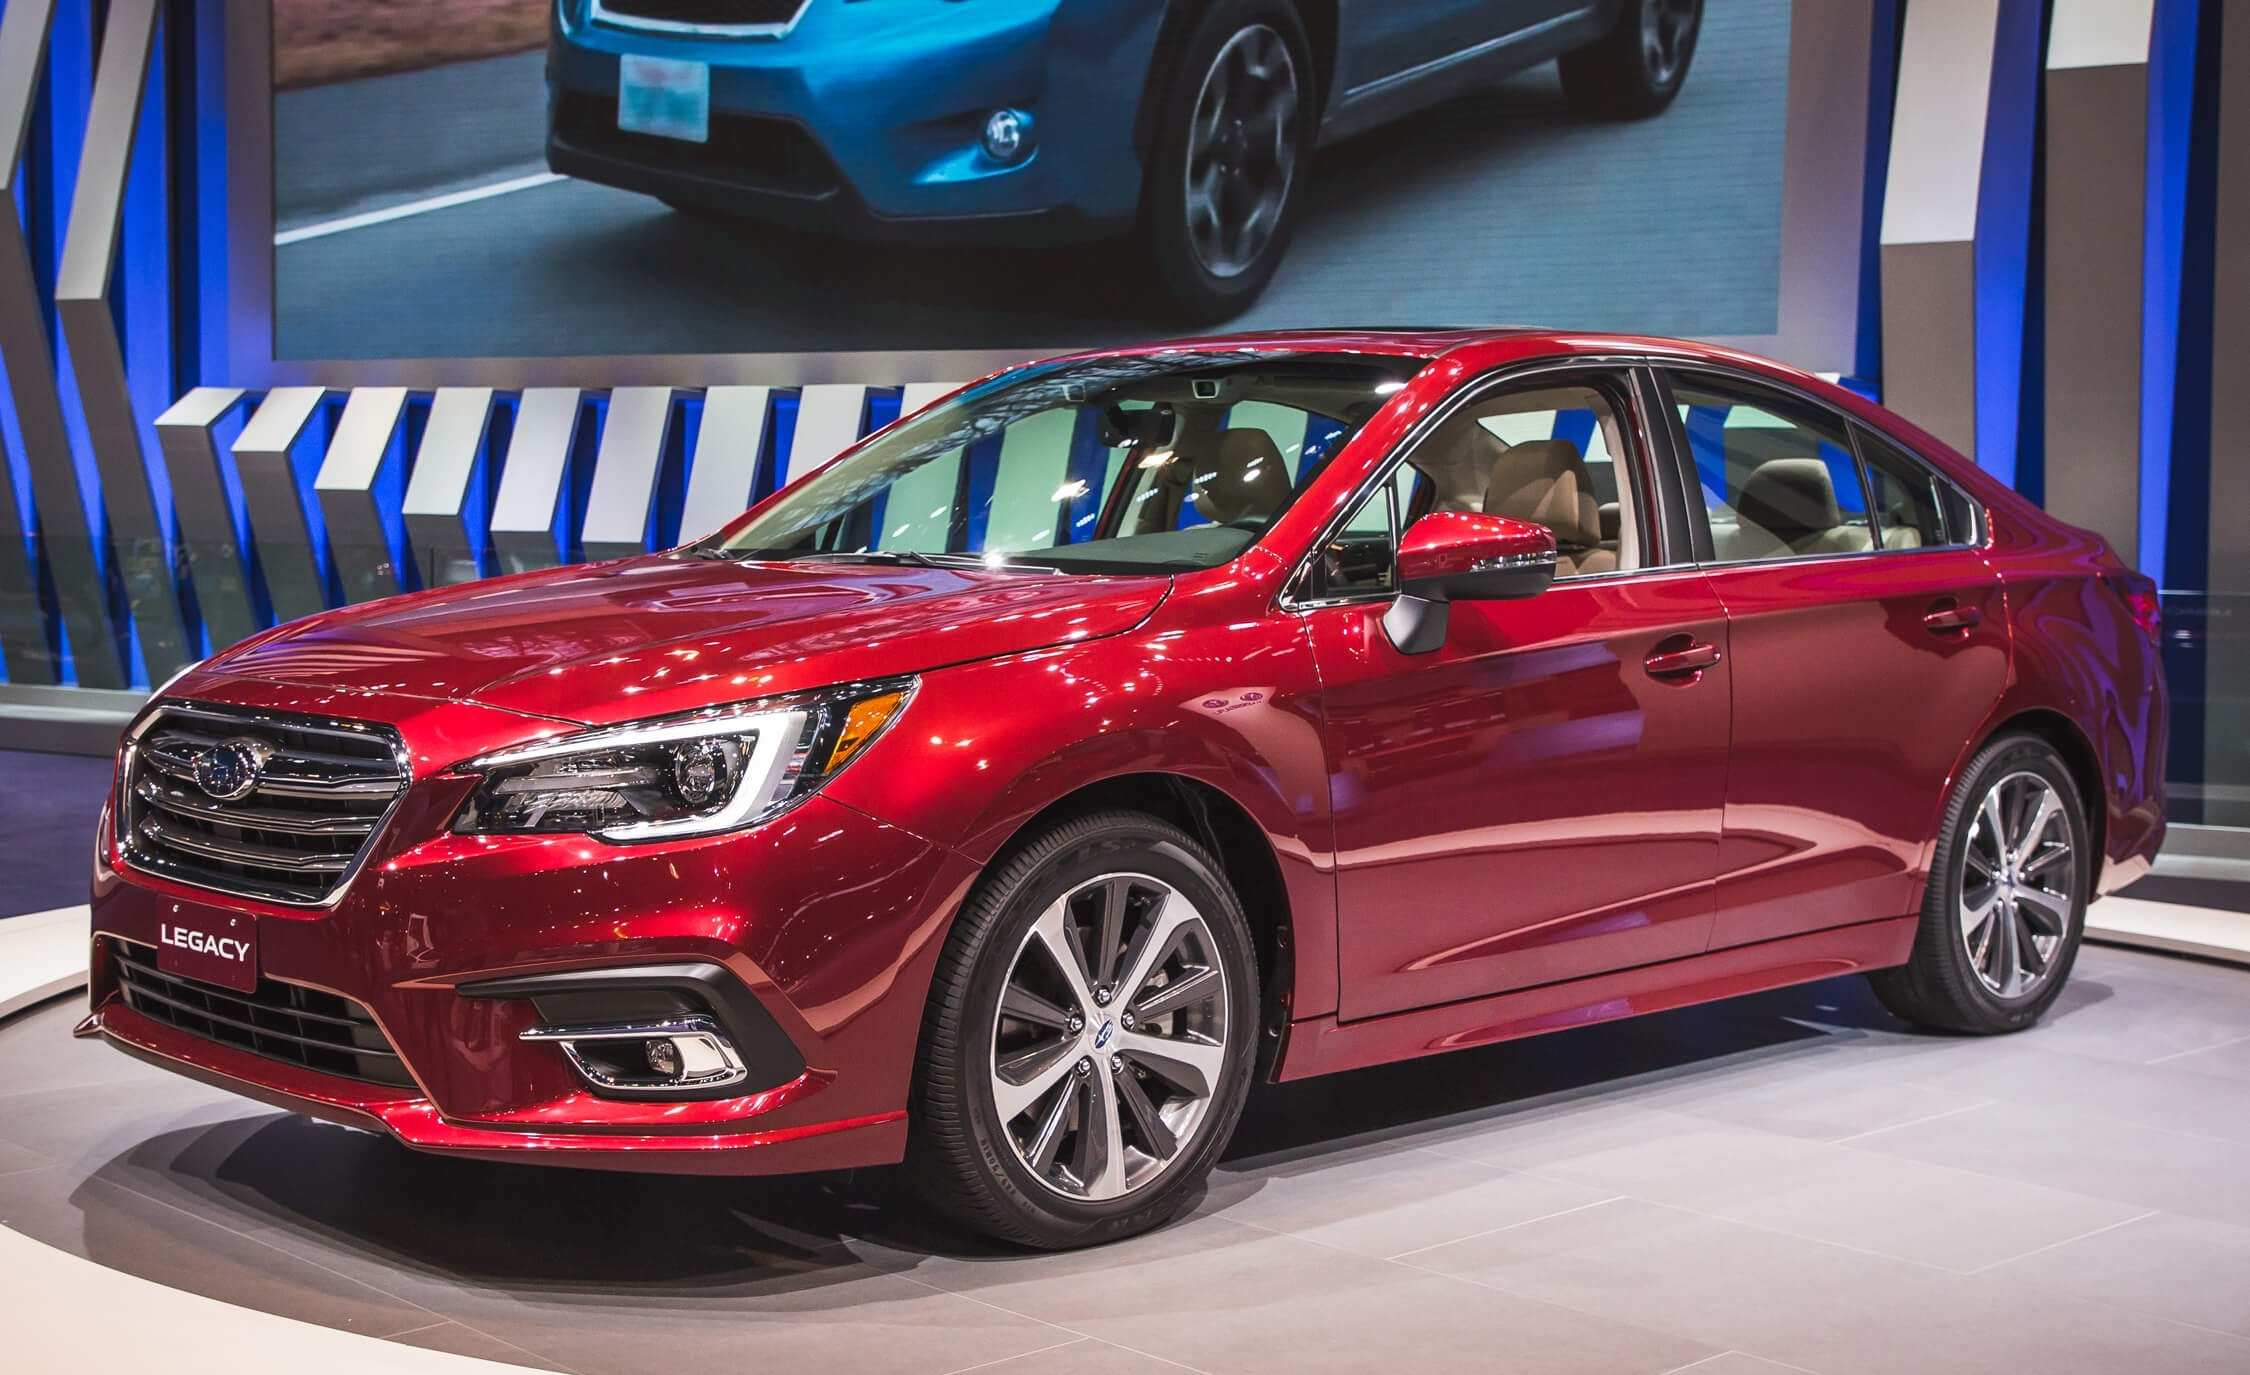 31 All New 2020 Subaru Legacy Ground Clearance Release Date and Concept